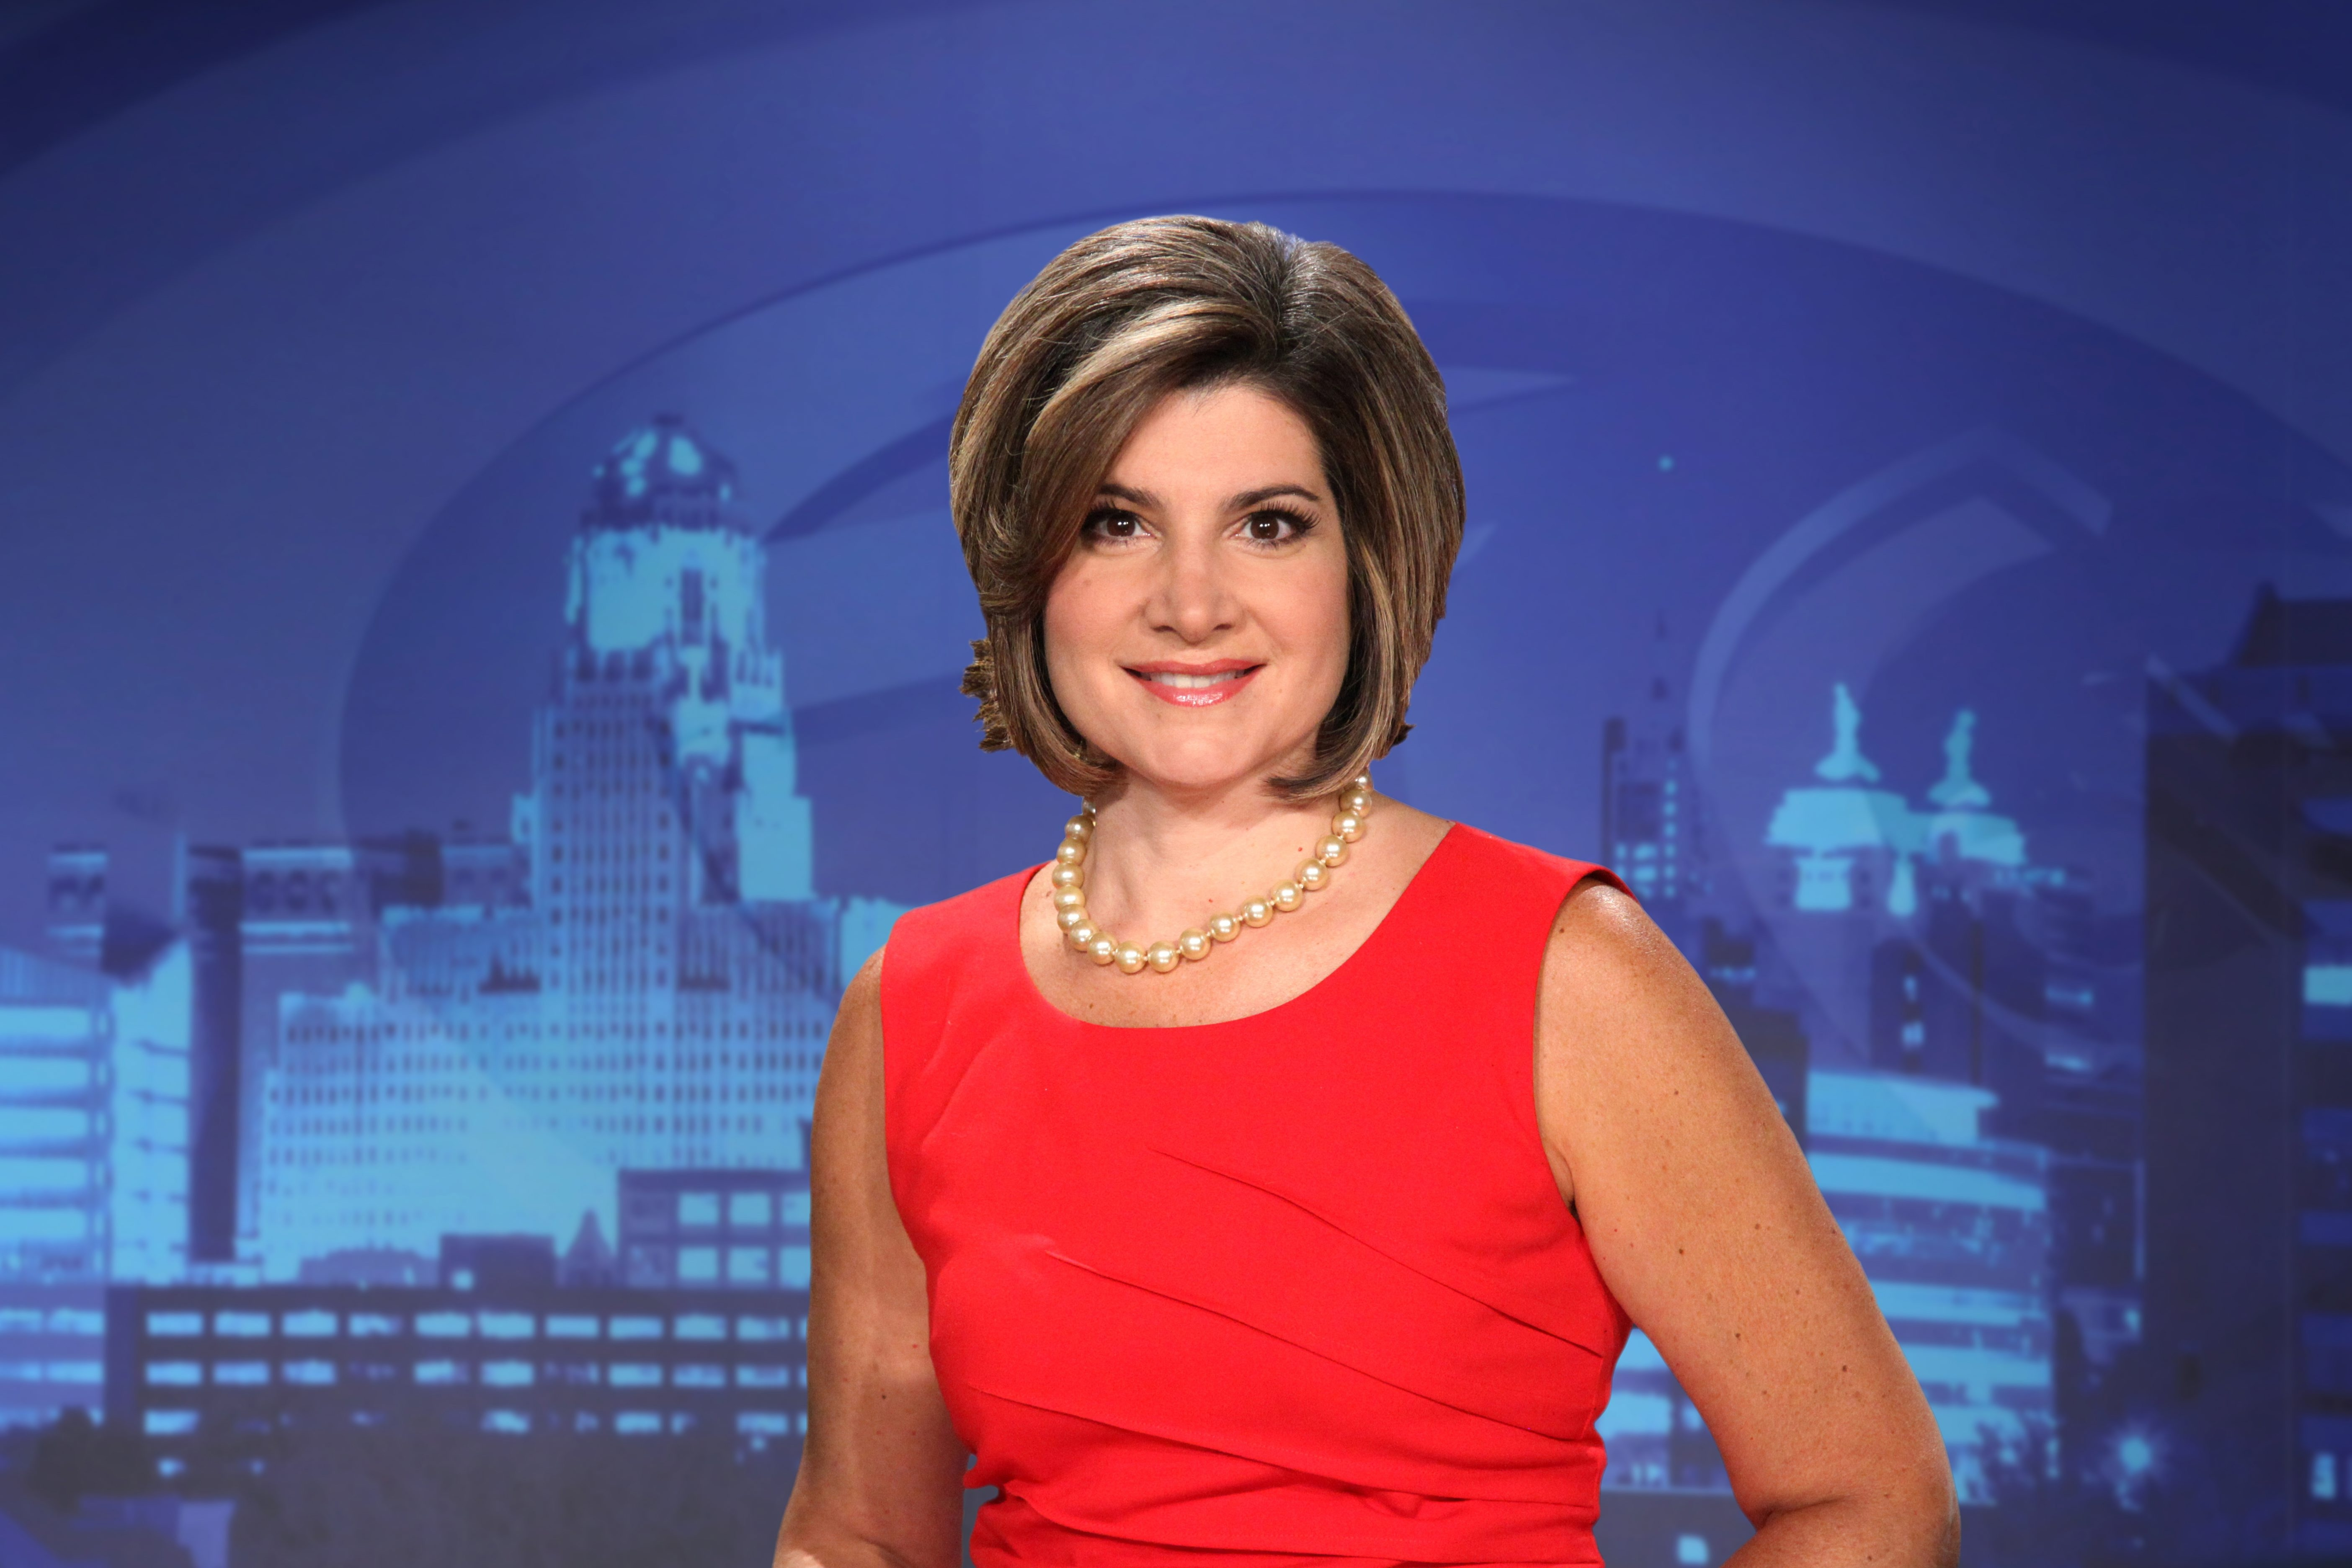 Lockport native Joanna Pasceri worked her way through the ranks at Channel 7, becoming a full-time reporter in 1997 and an anchor in 2006.